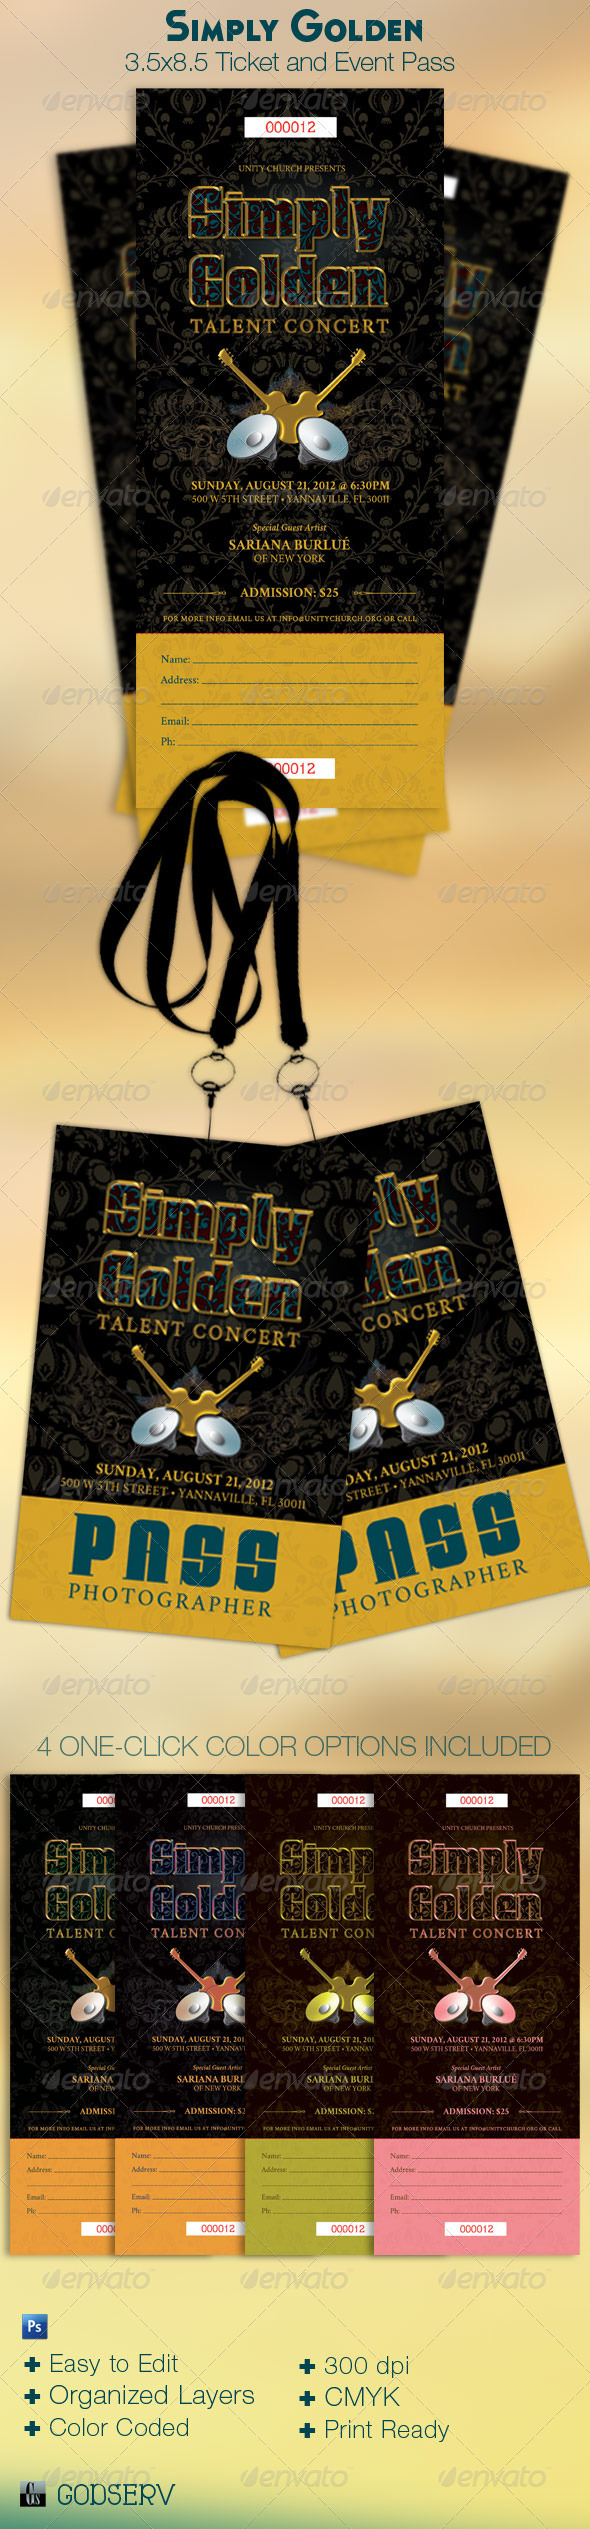 Simply golden ticket and event pass template print for Golden ticket template editable